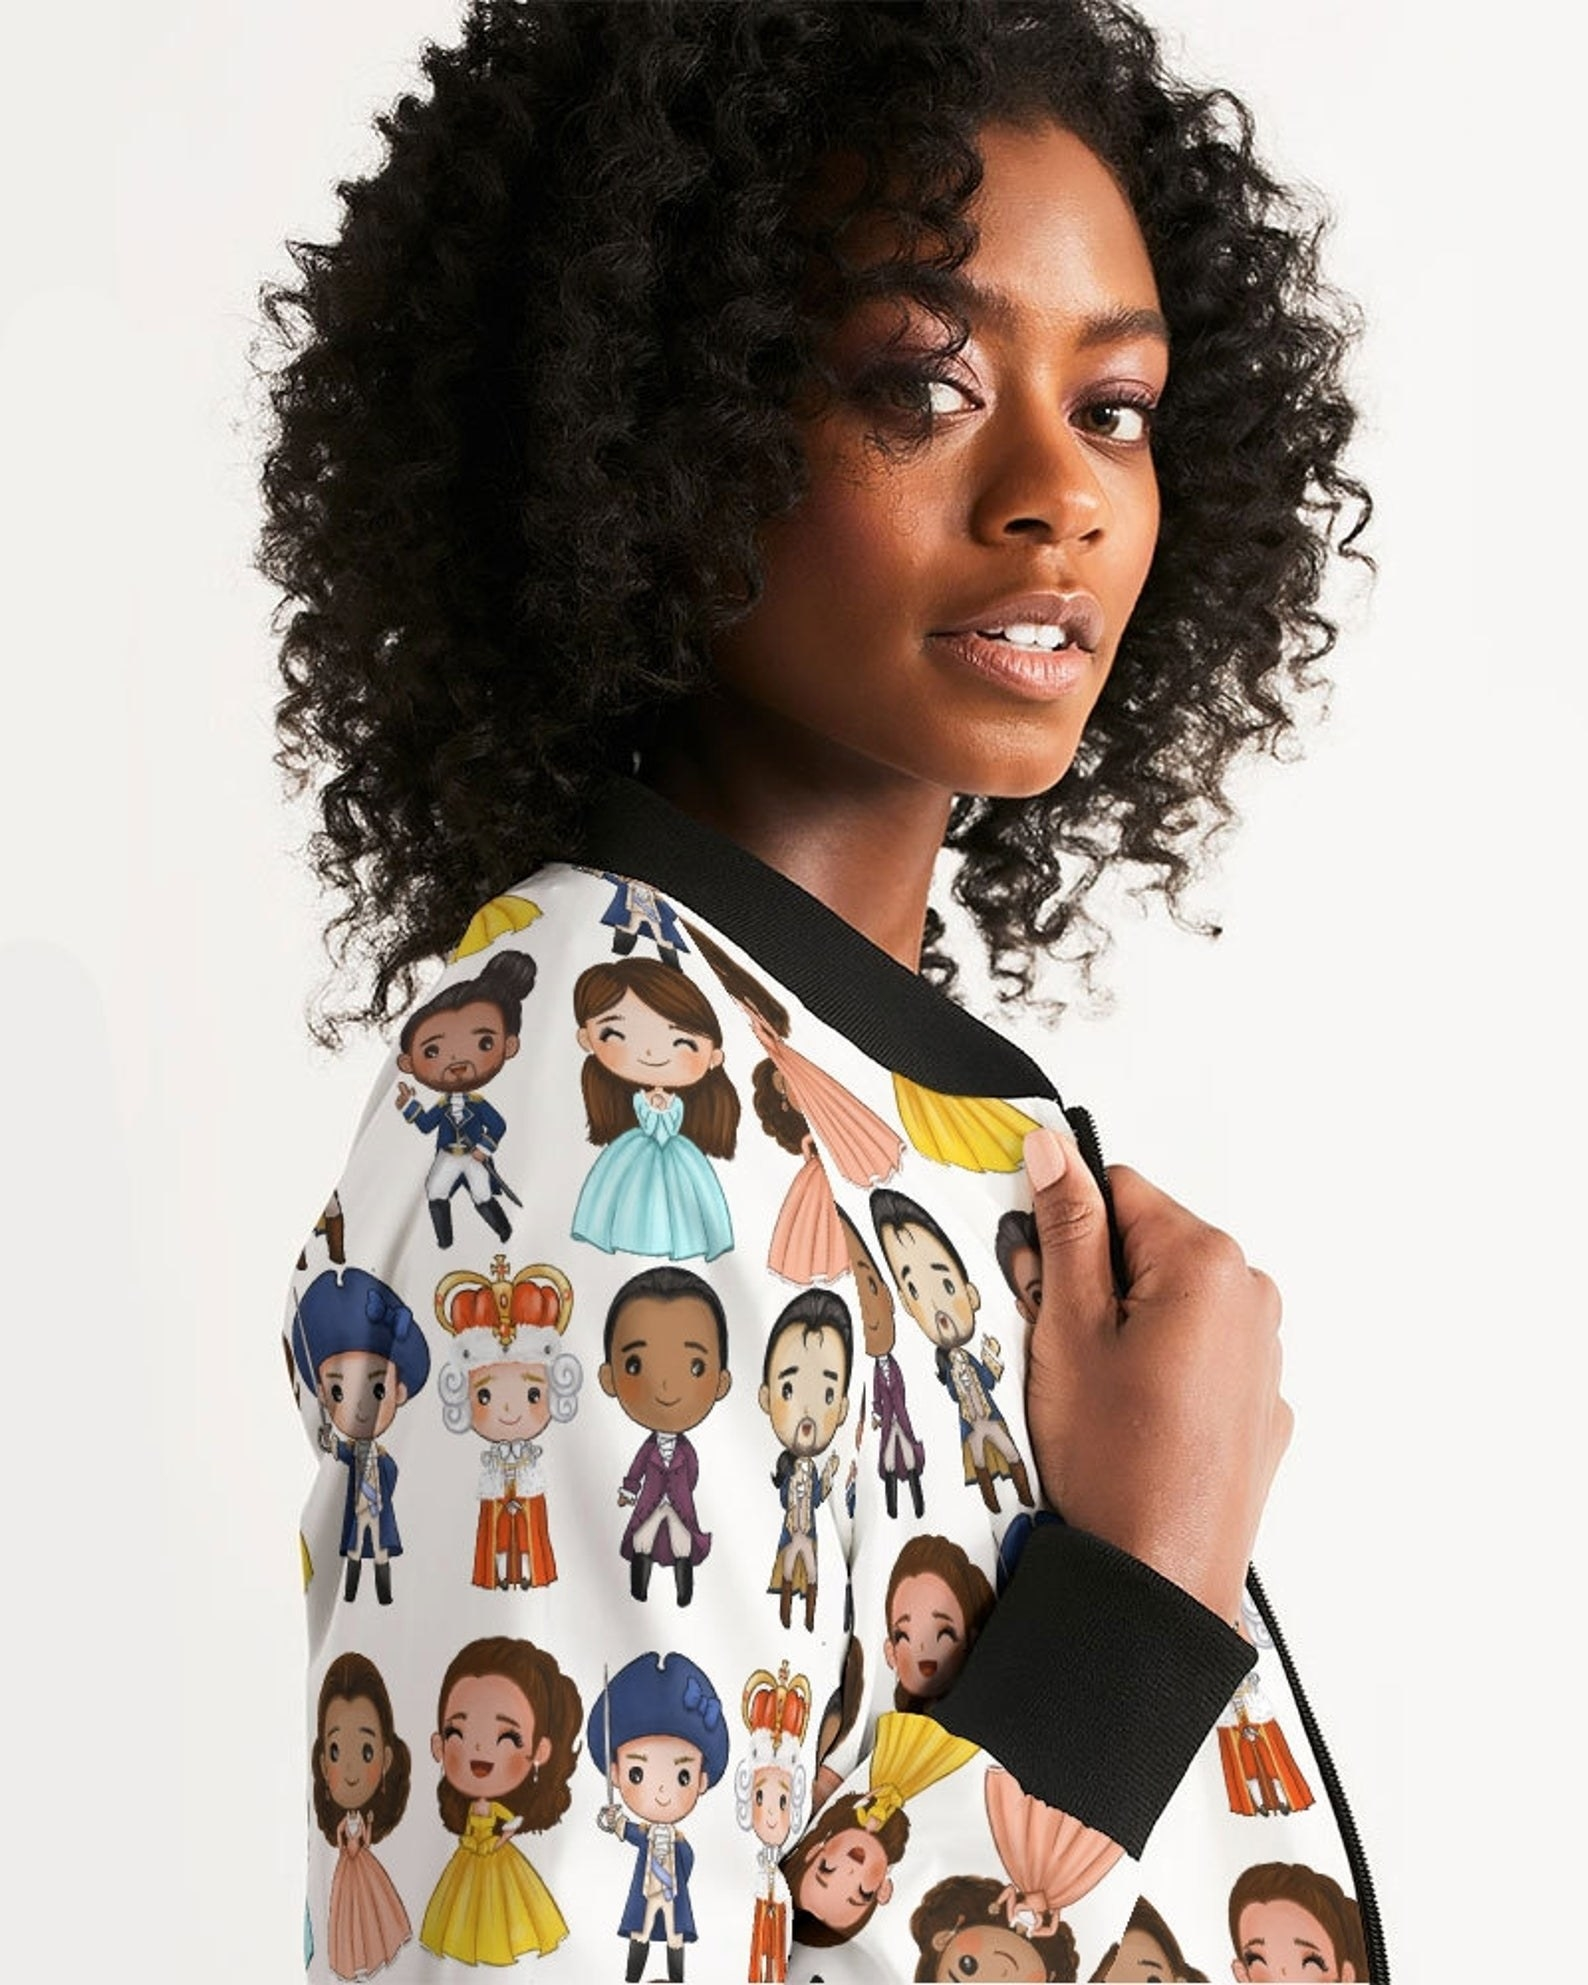 A model in a bomber jacket with cartoon Hamilton characters on it